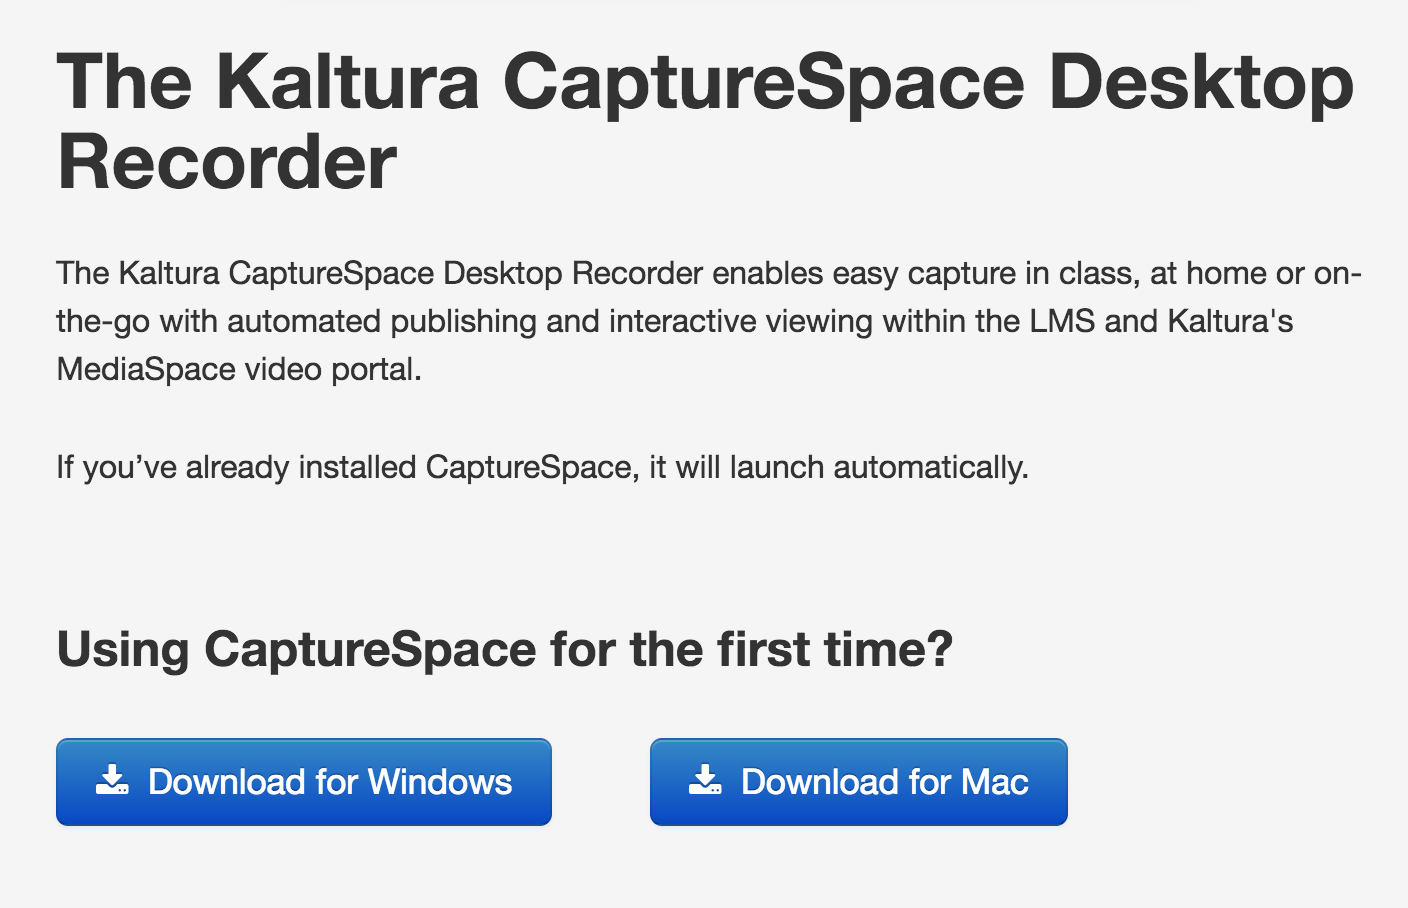 screenshot of capturespace desktop recorder screen